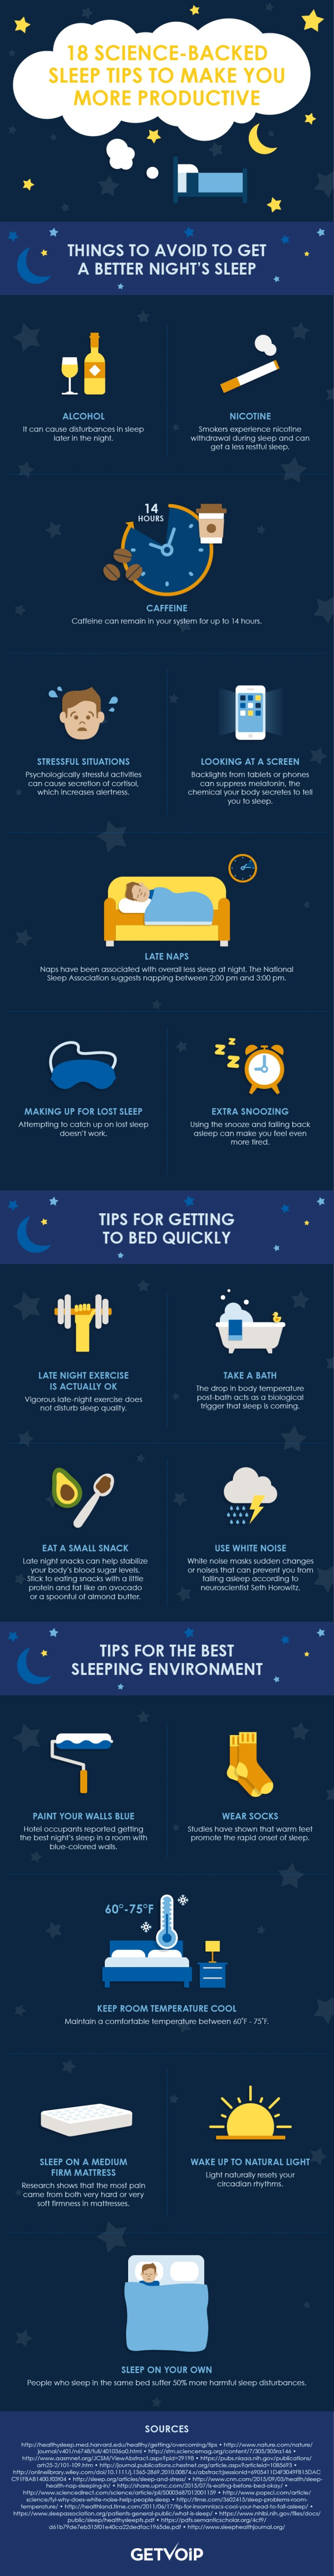 1489766918_18--science-backed-sleep-tips-make-you-more-productive-infographic